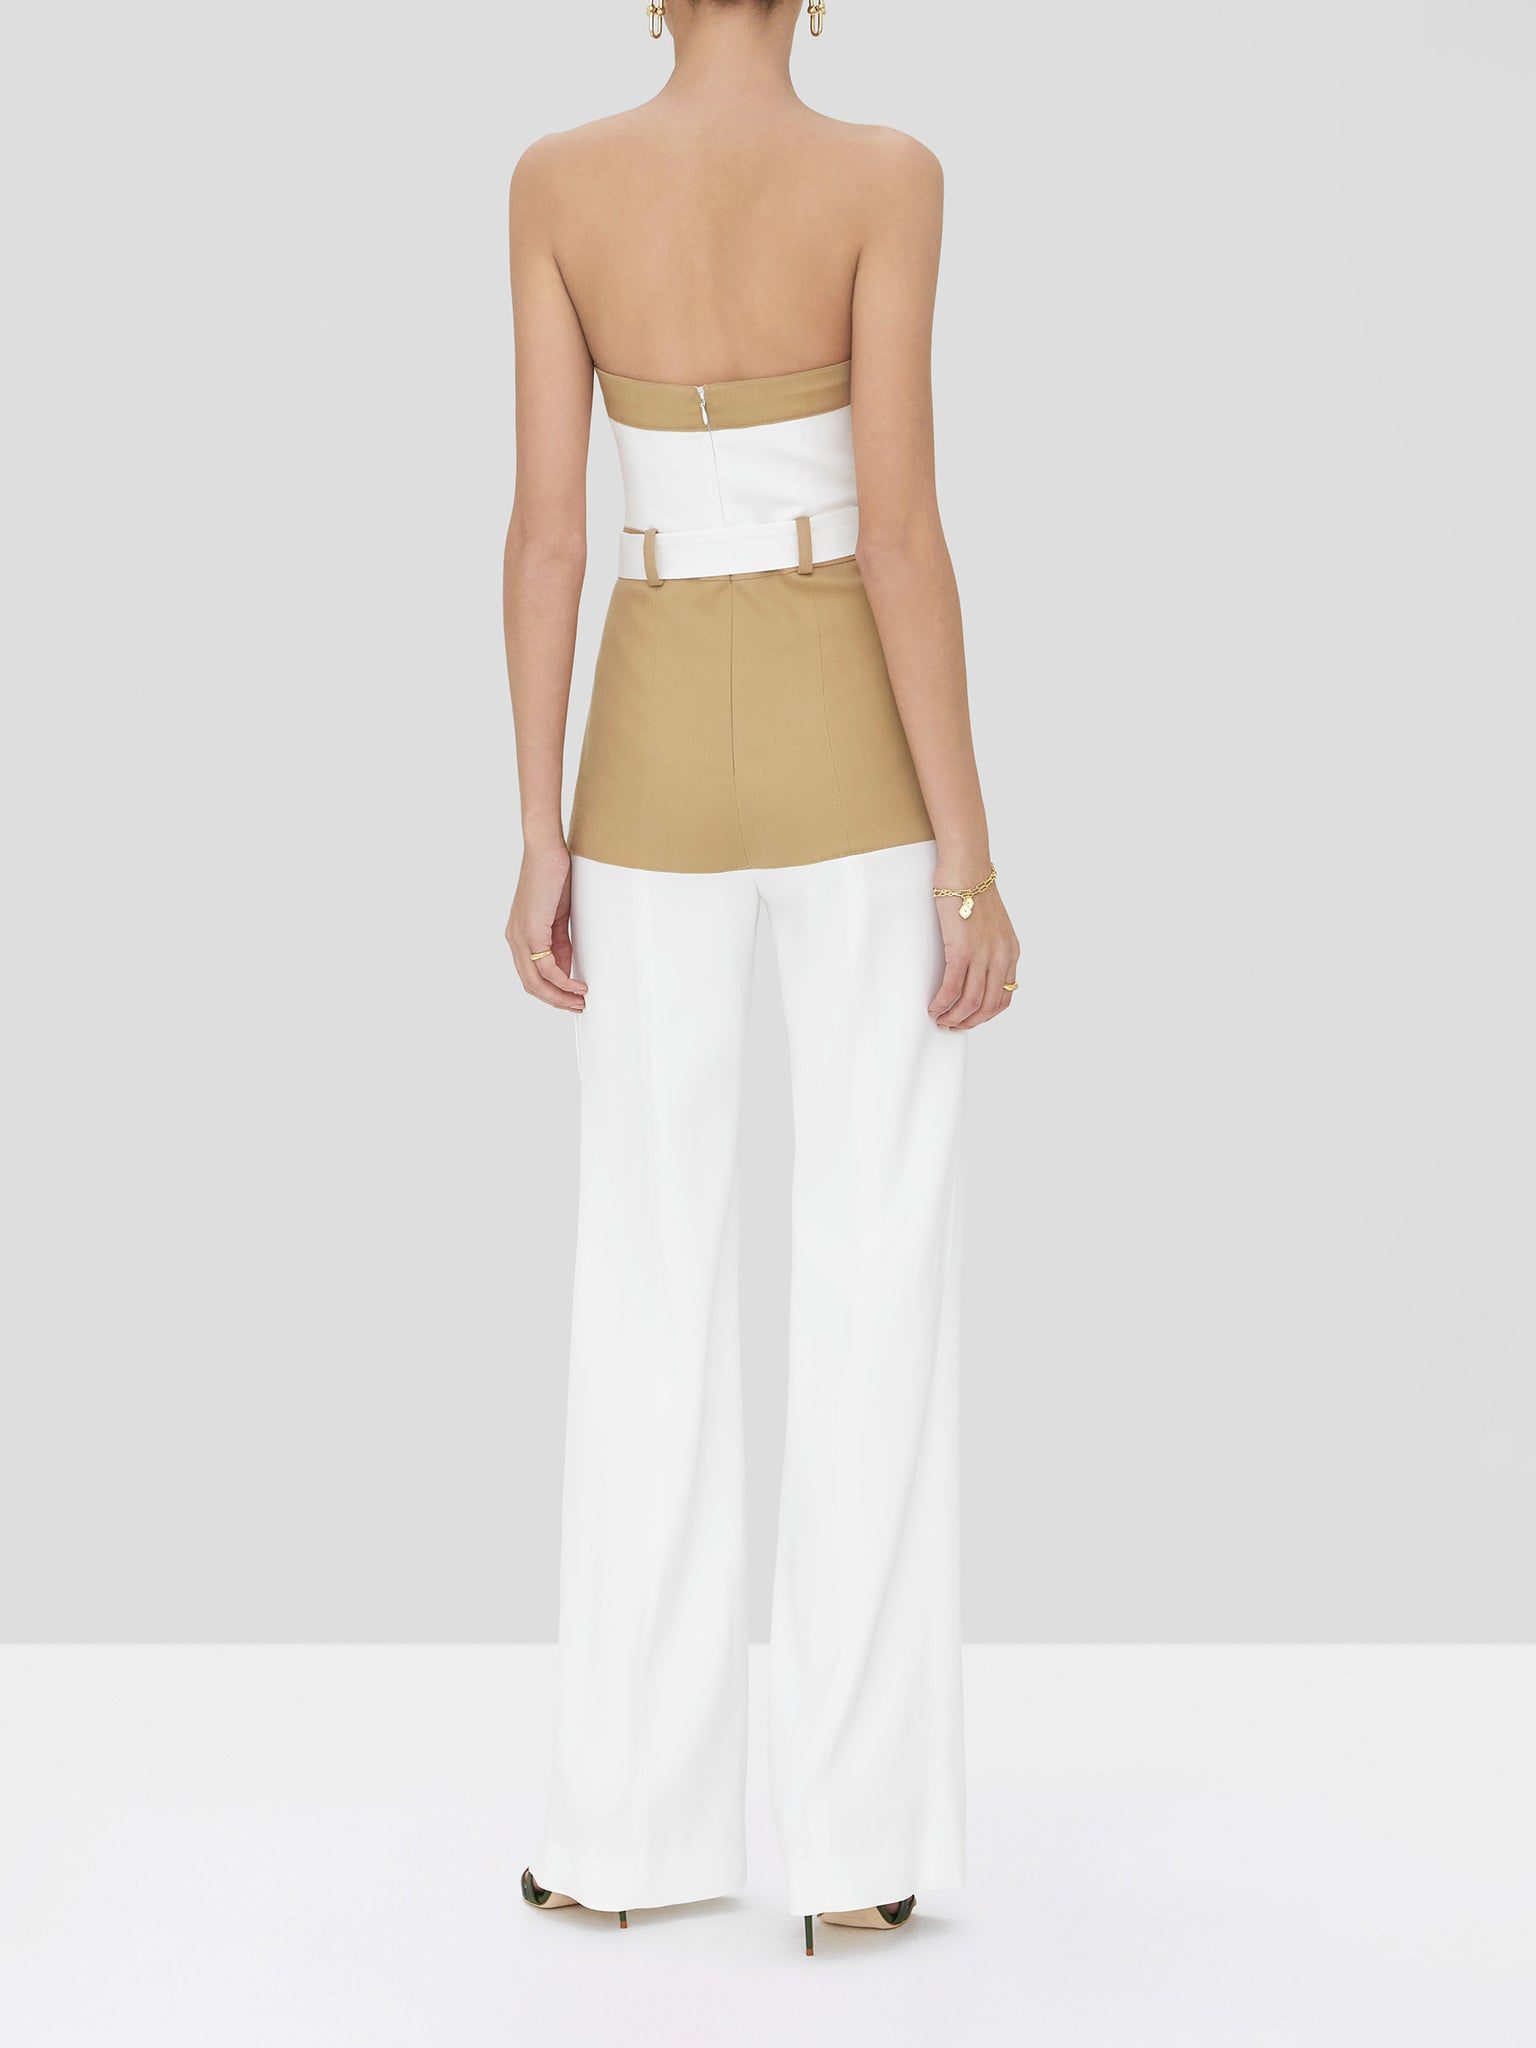 perrin jumpsuit in tan/white - Rear View